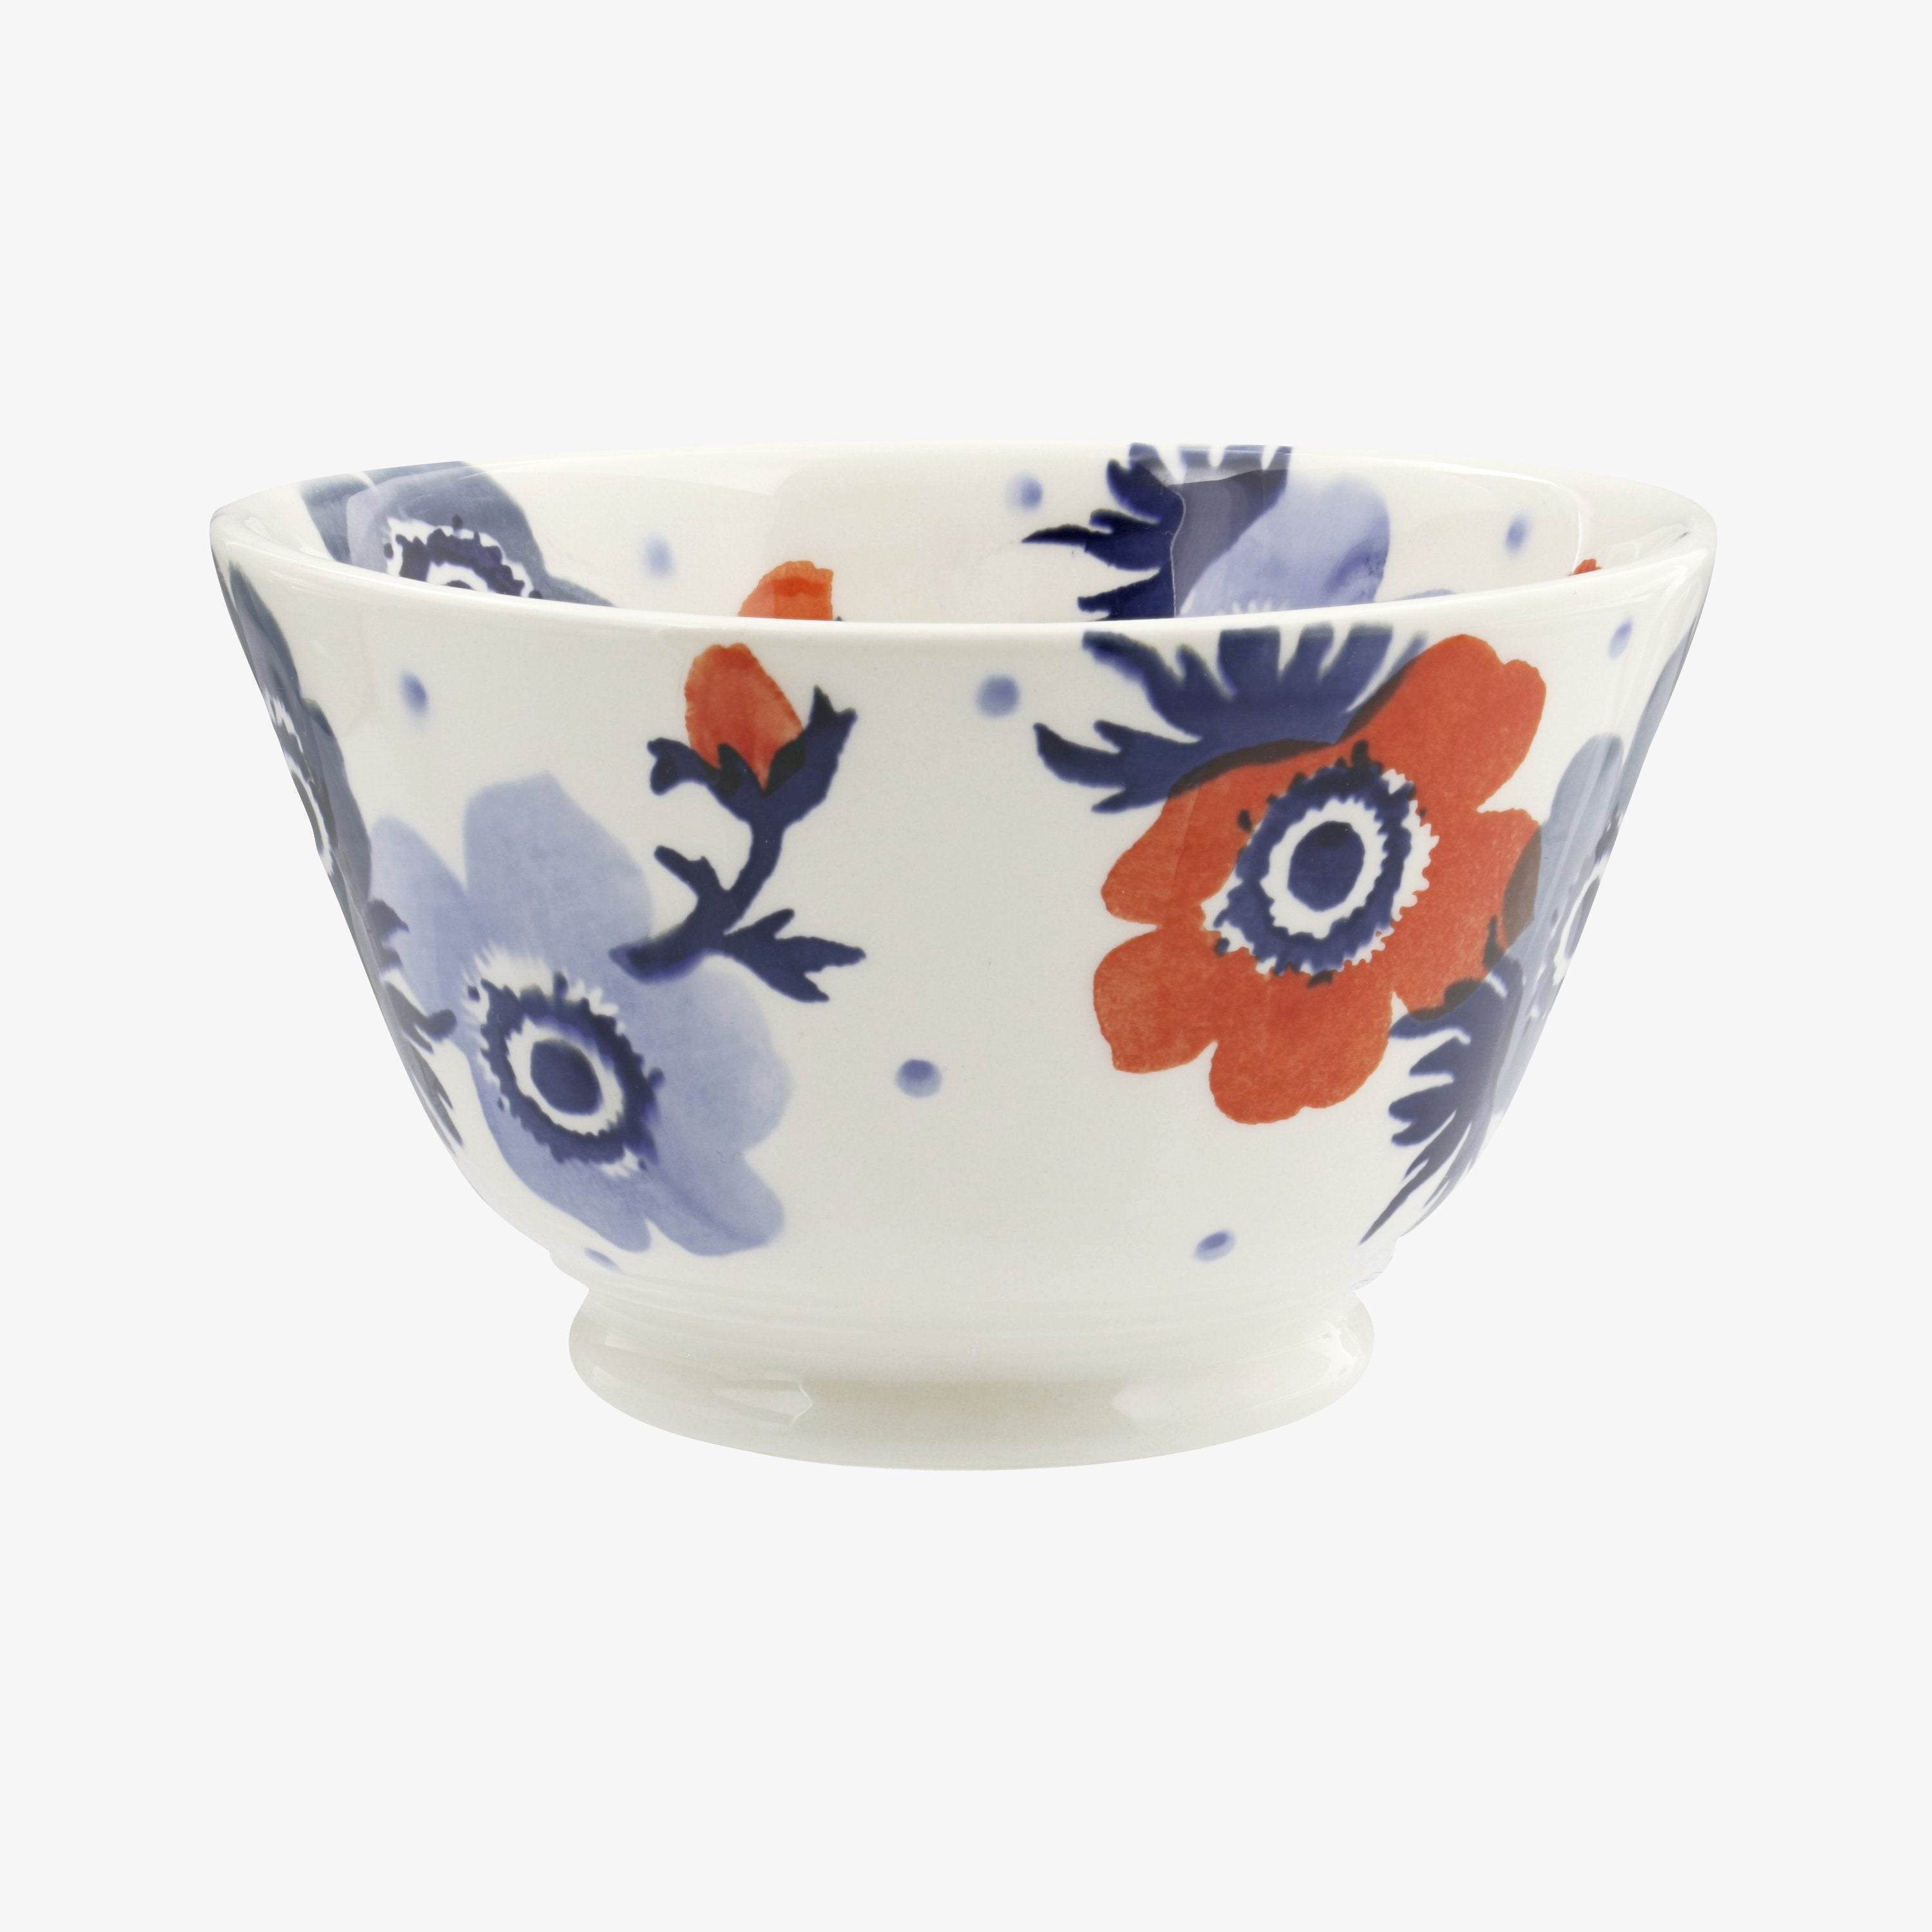 Image of Anemone Small Old Bowl